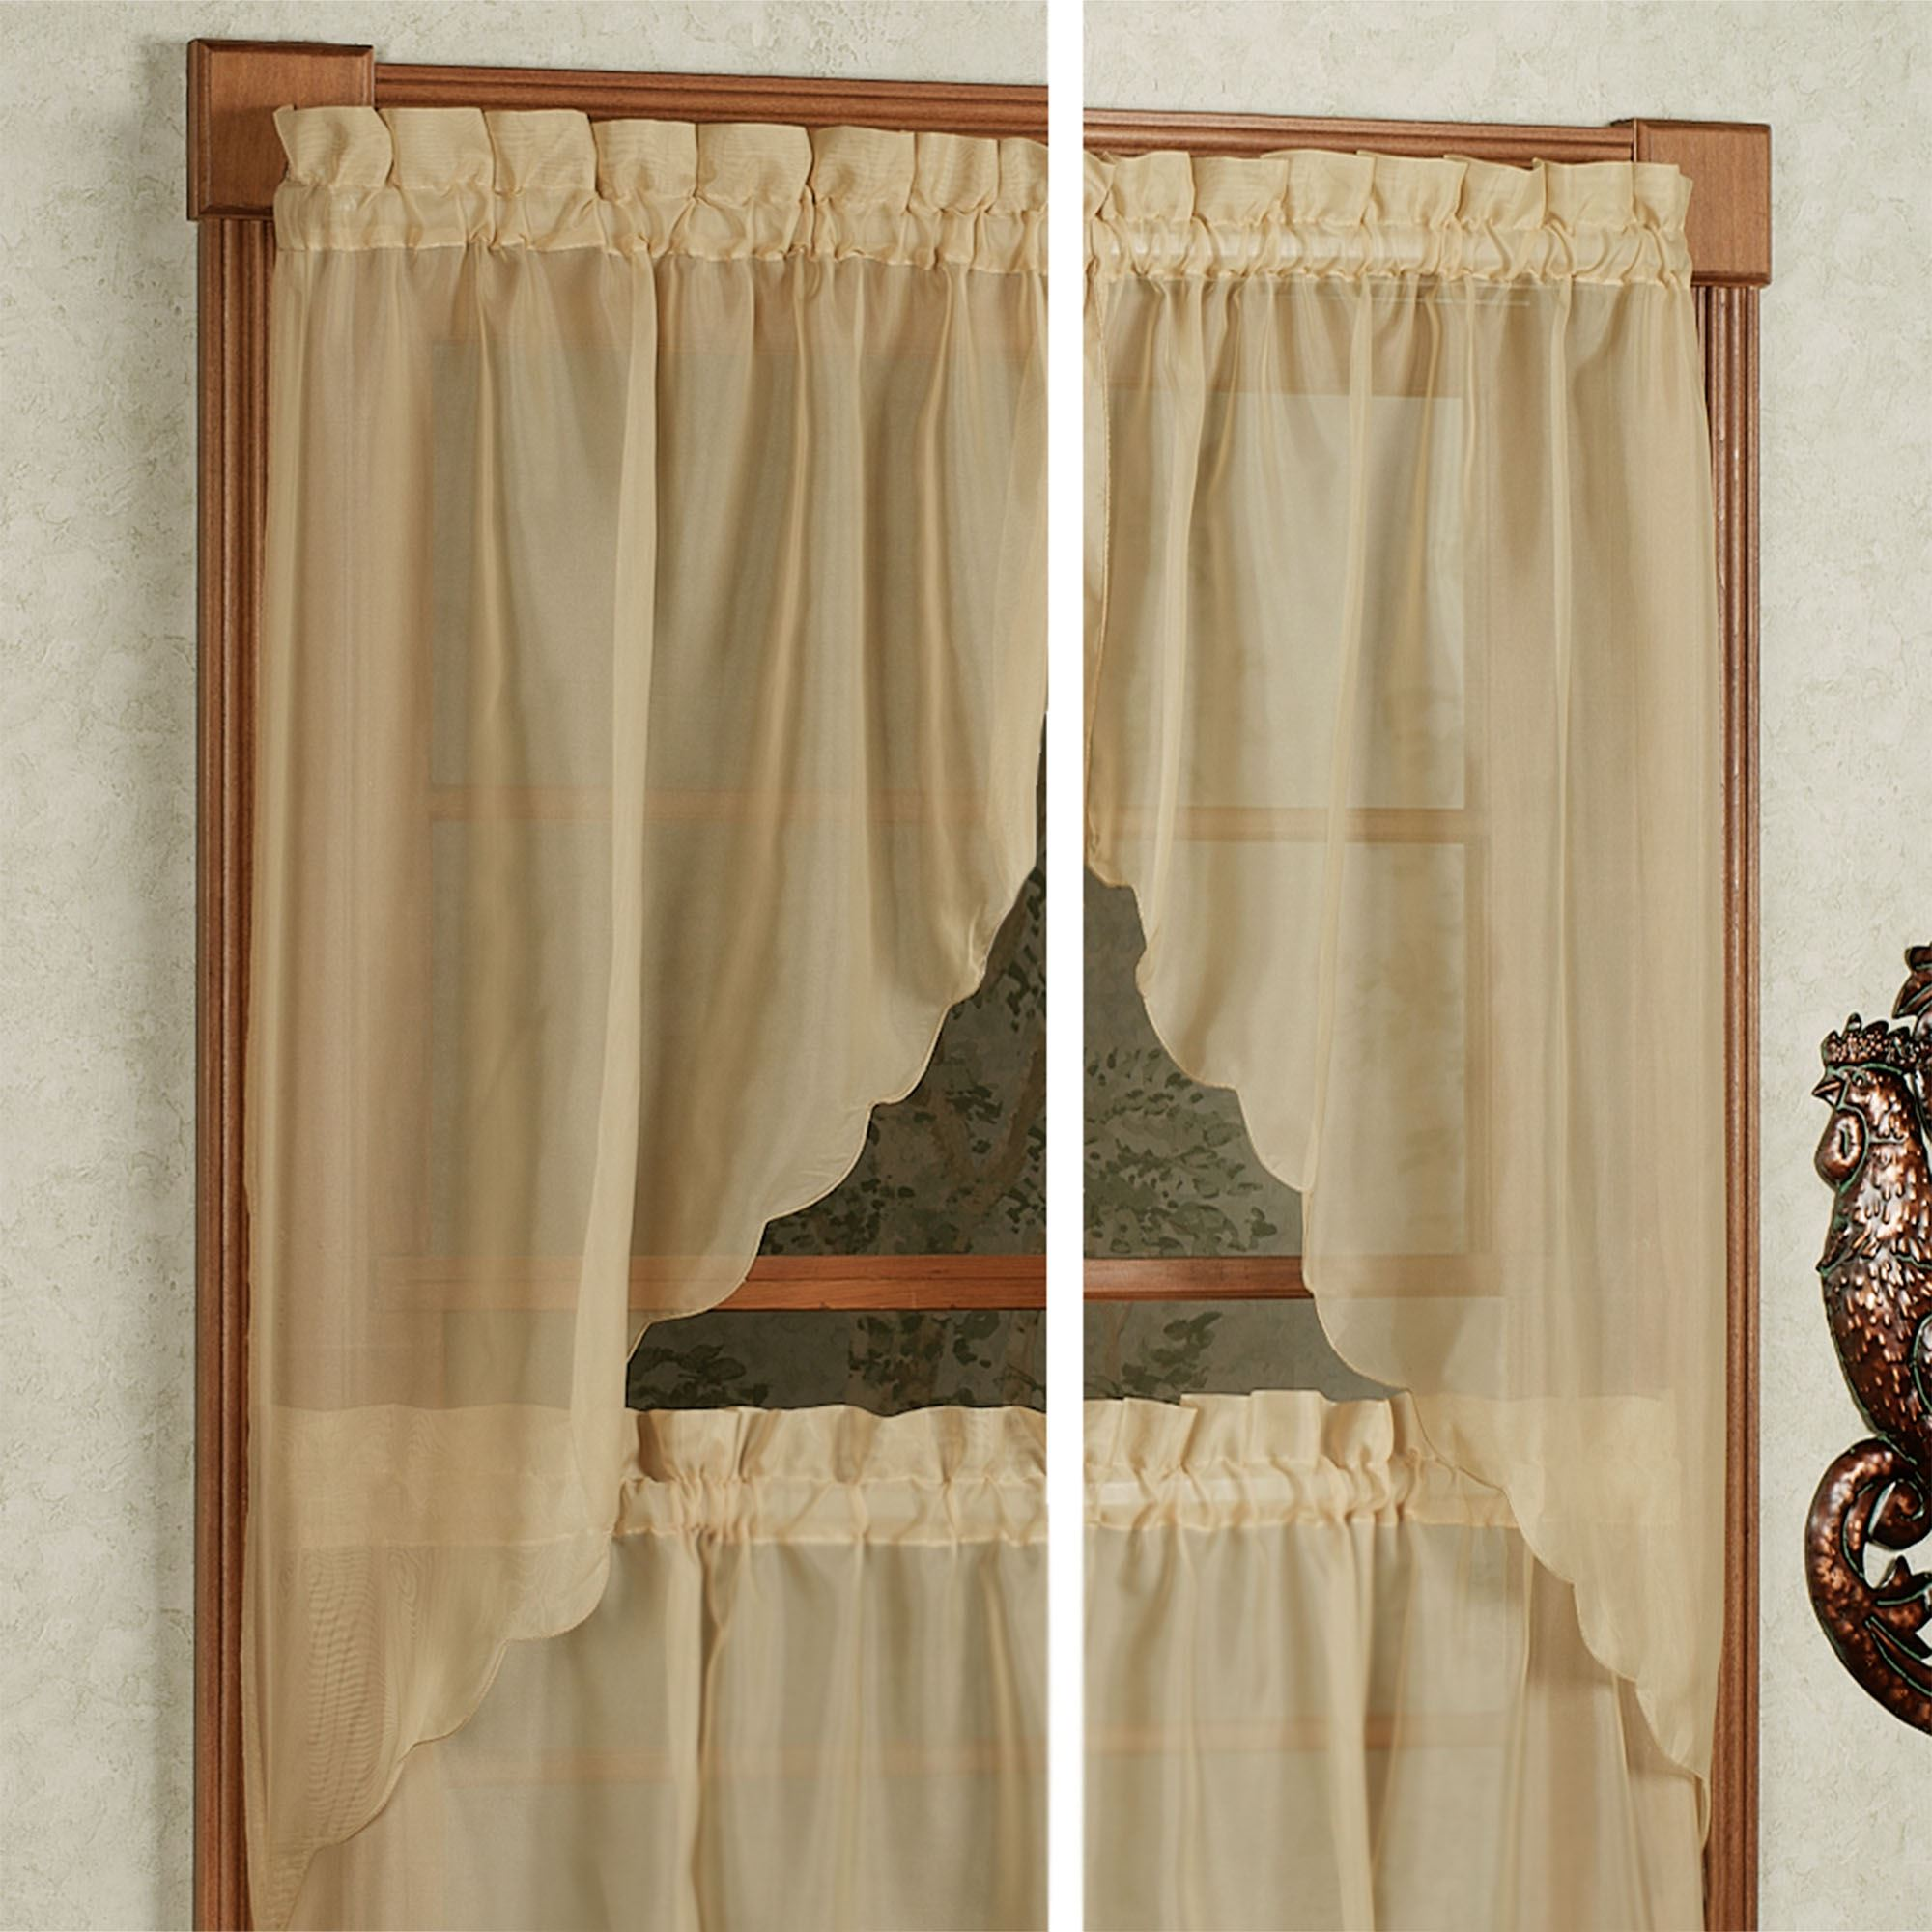 windows cabin valances window deer valance for treatments curtains the